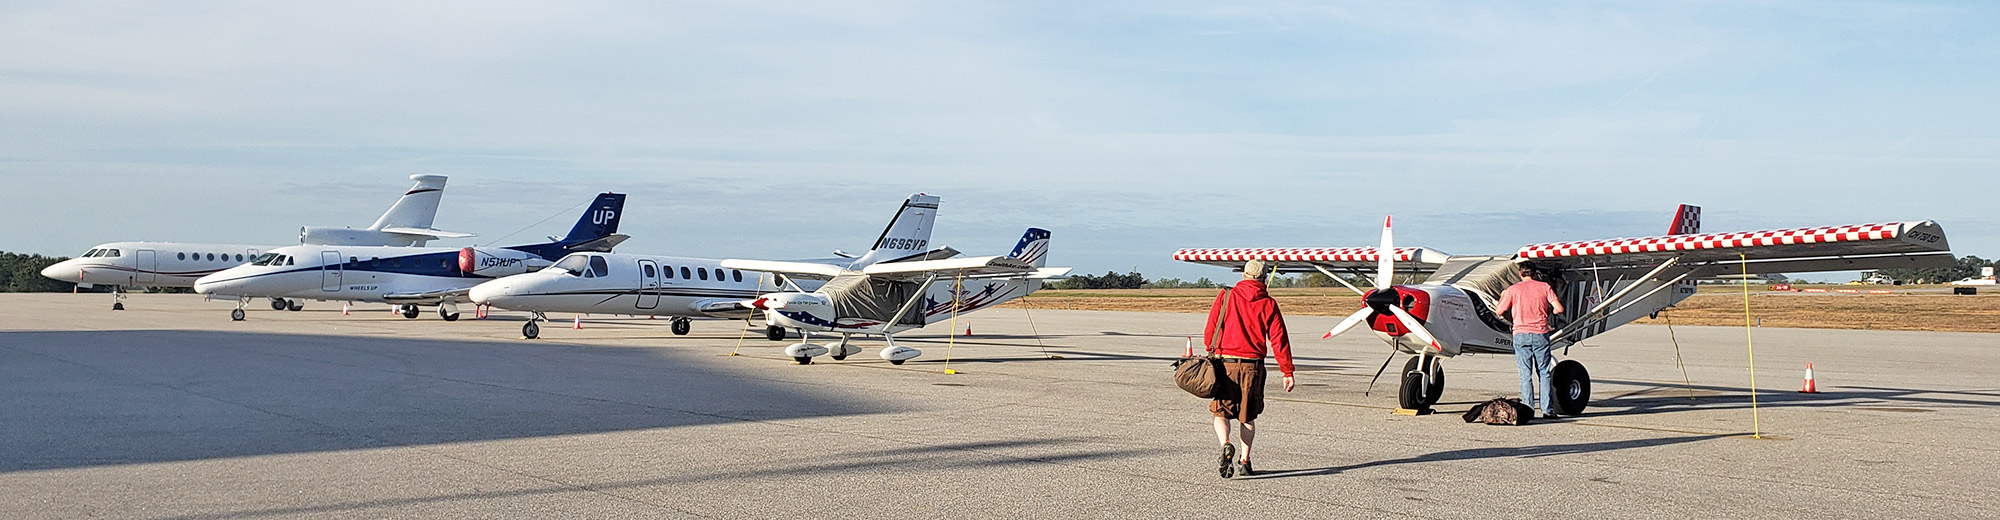 Sun 'n Fun Fly-In 2019 and 2,000 miles of flying - Zenith